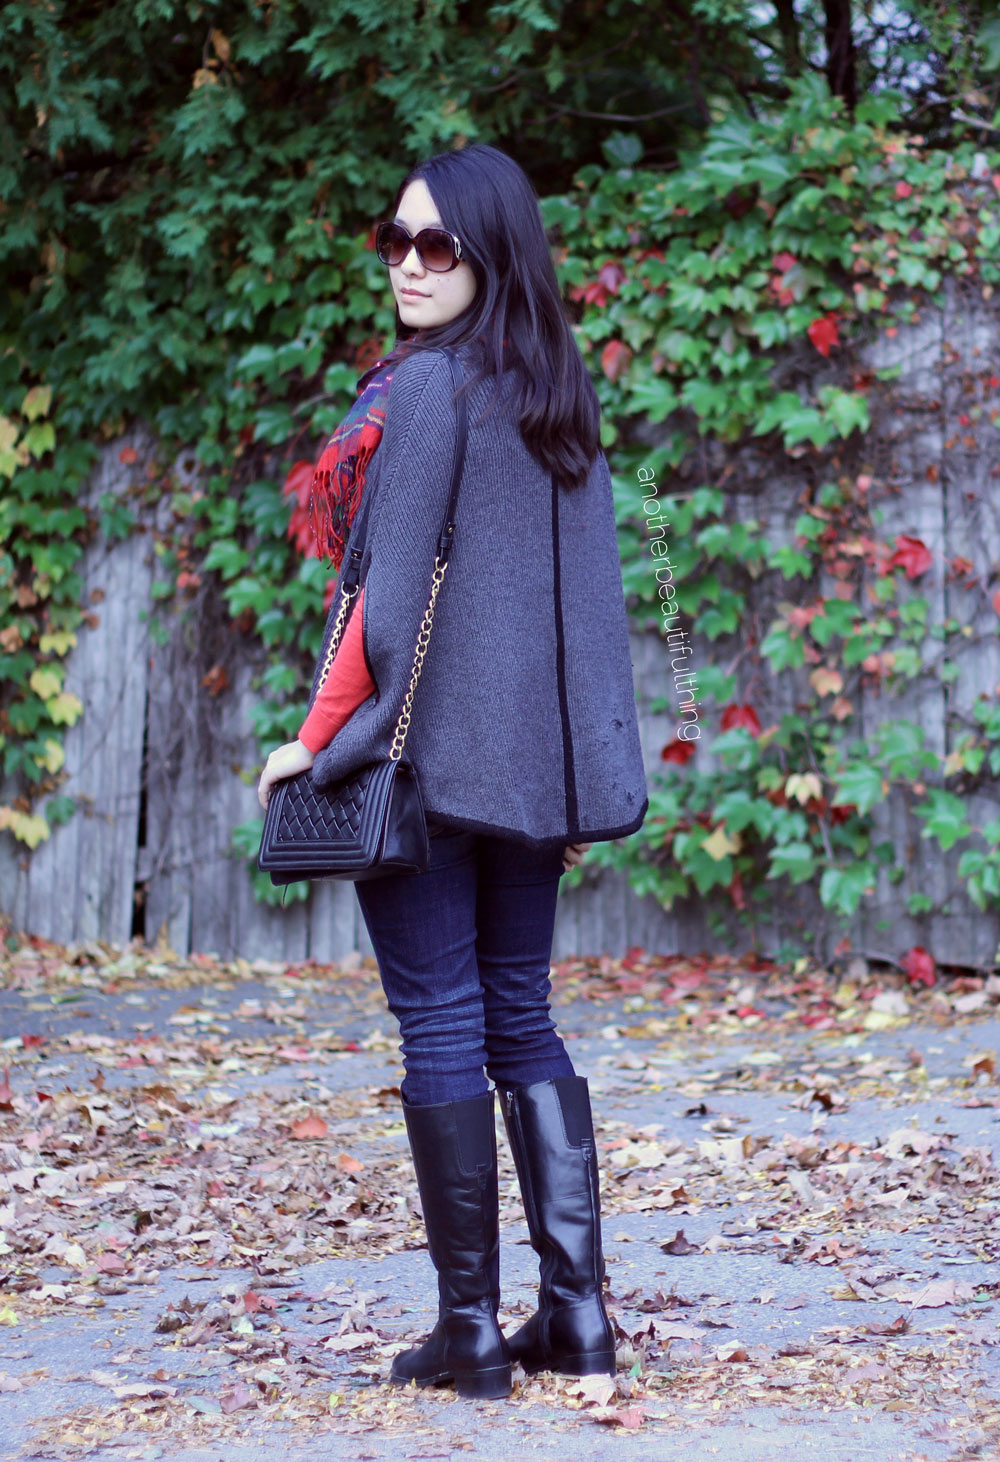 Poncho weather || Black chain crossbody and red plaid scarf